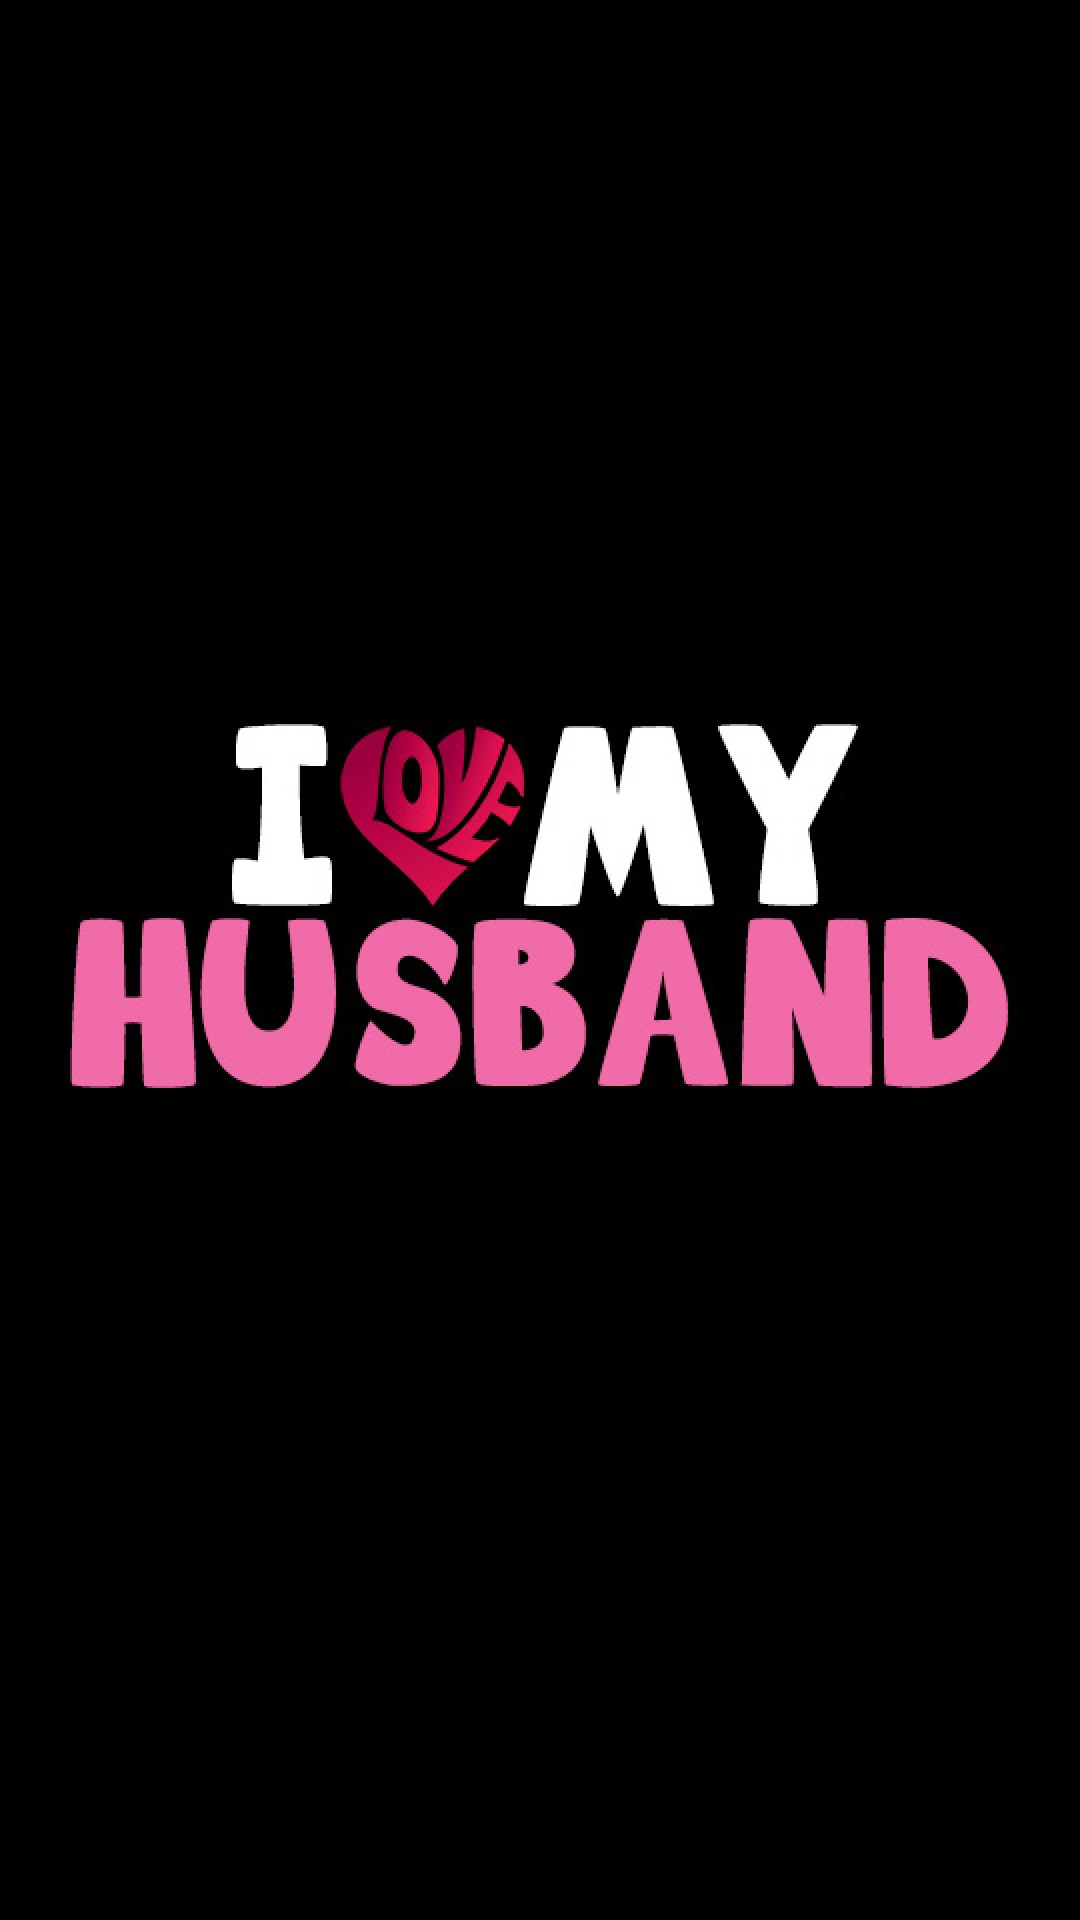 I Love My Husband Images For Iphone